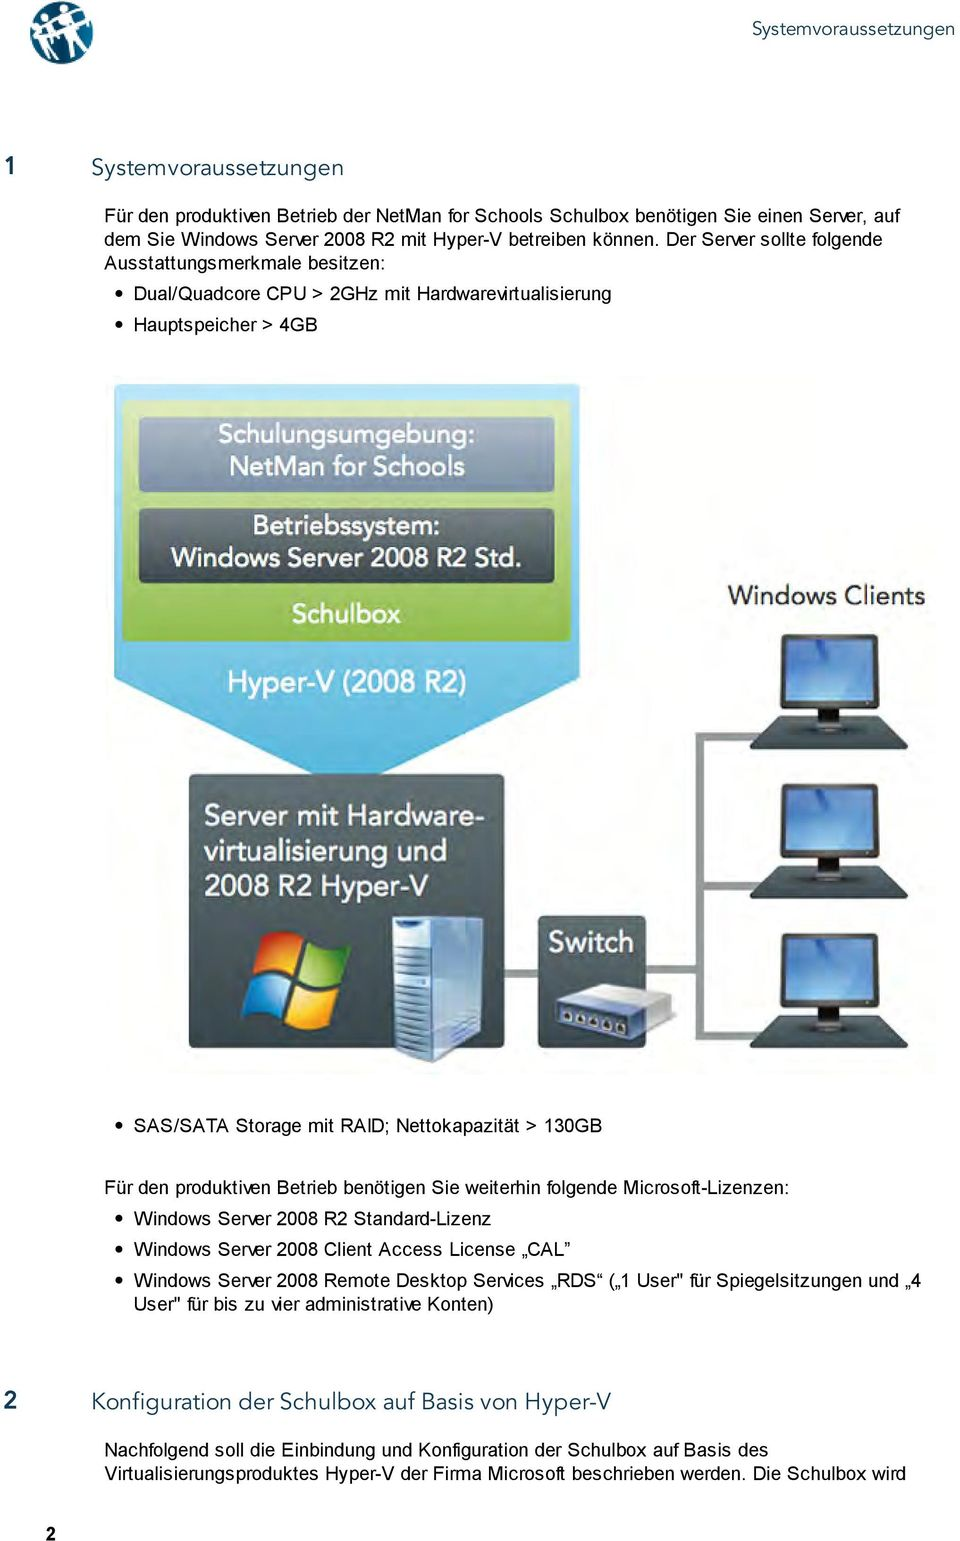 produktiven Betrieb benötigen Sie weiterhin folgende Microsoft-Lizenzen: Windows Server 2008 R2 Standard-Lizenz Windows Server 2008 Client Access License CAL Windows Server 2008 Remote Desktop